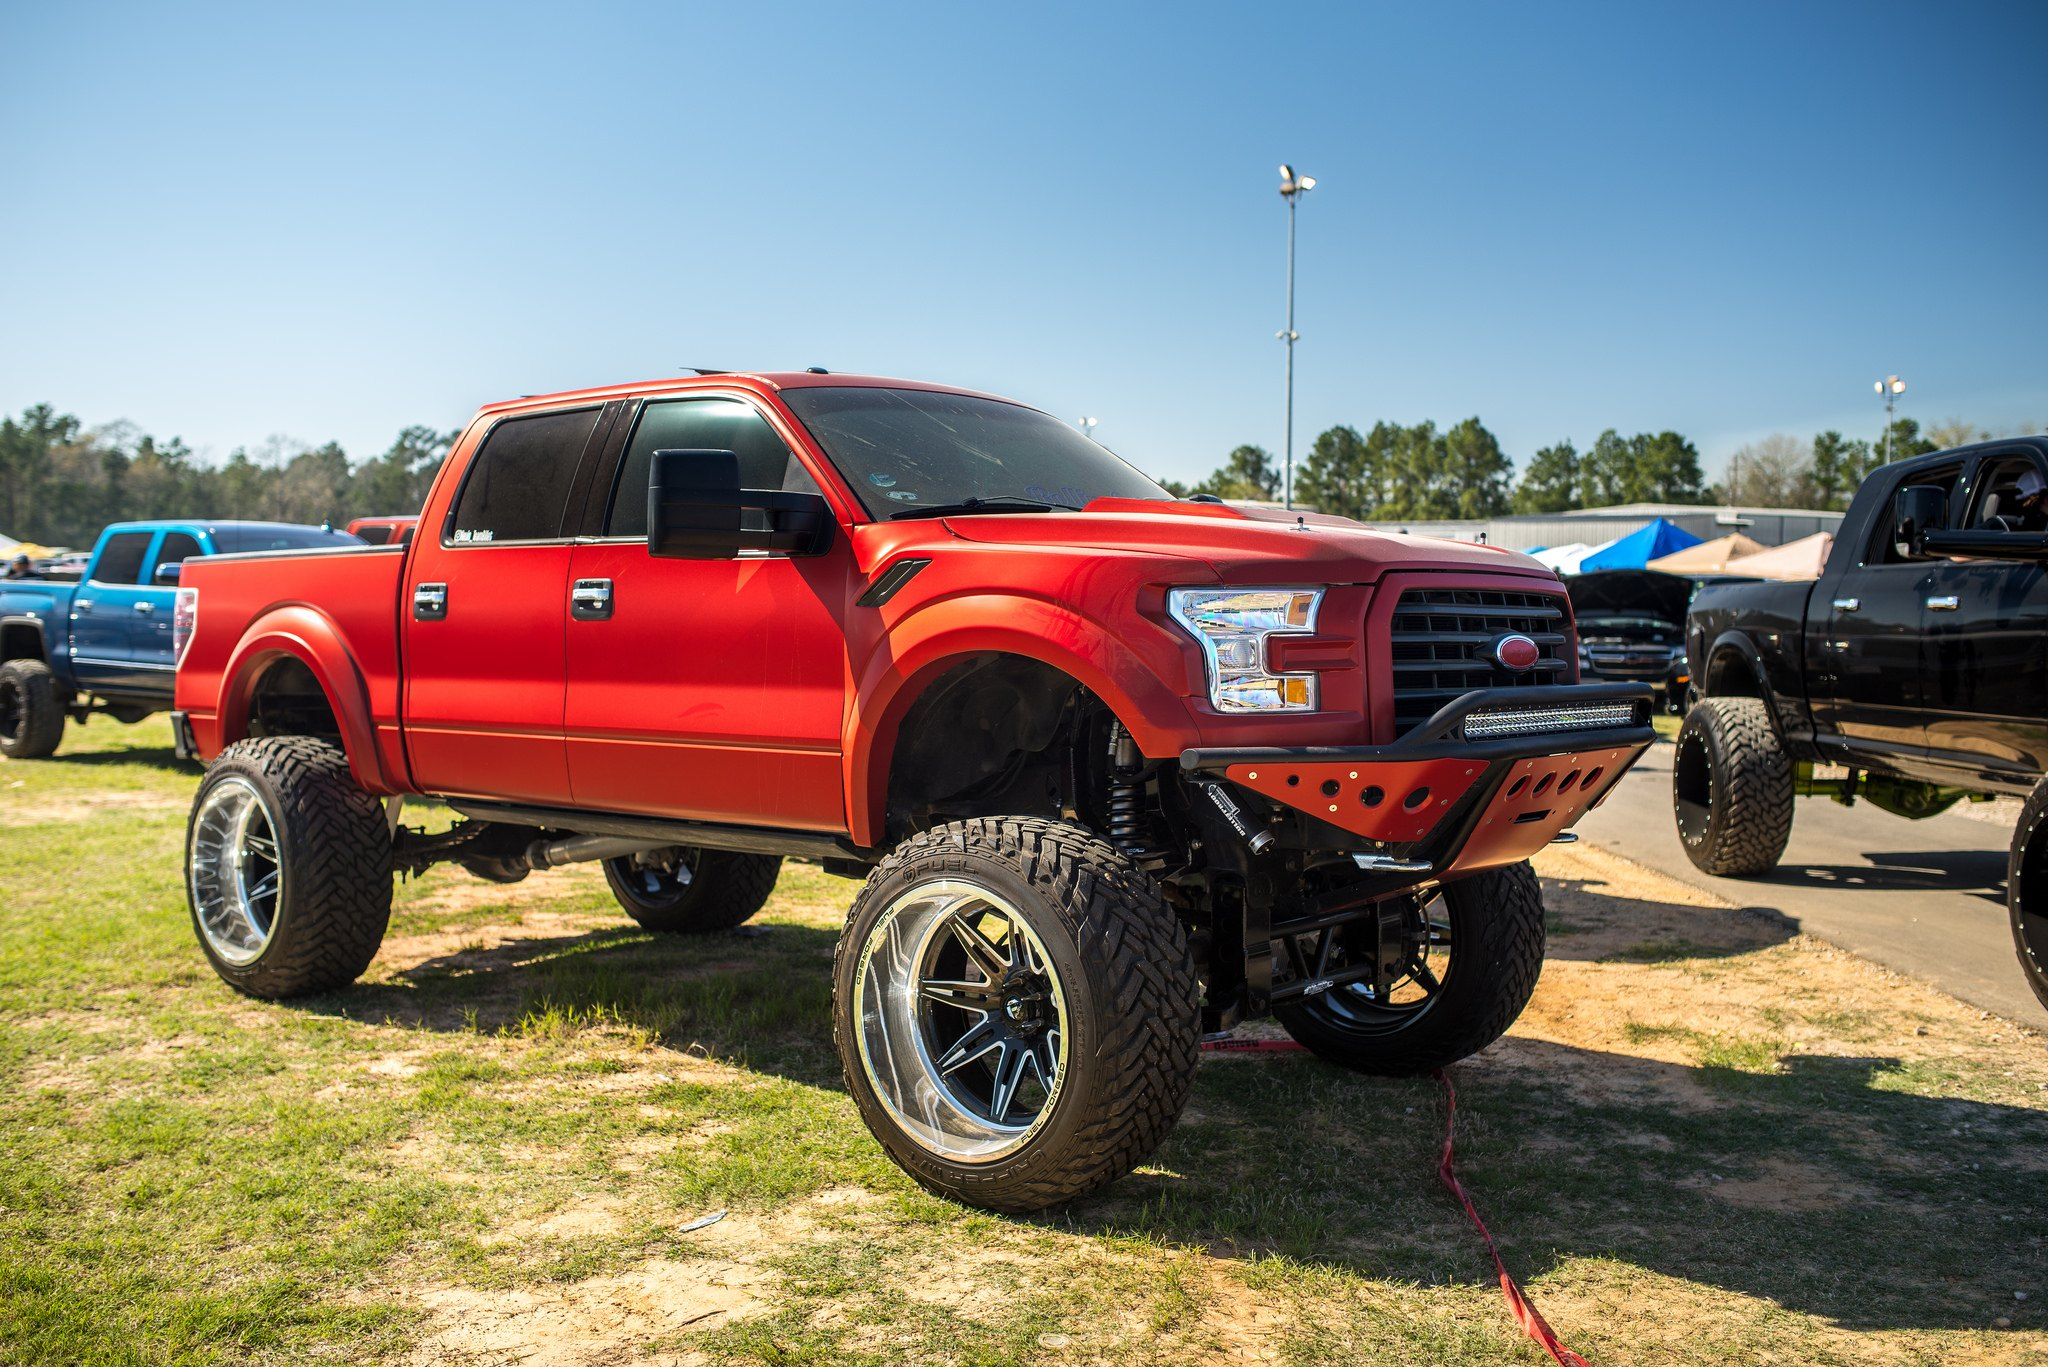 Custom F 150 >> Fully Customized Ford F150 With A Front End Swap Carid Com Gallery